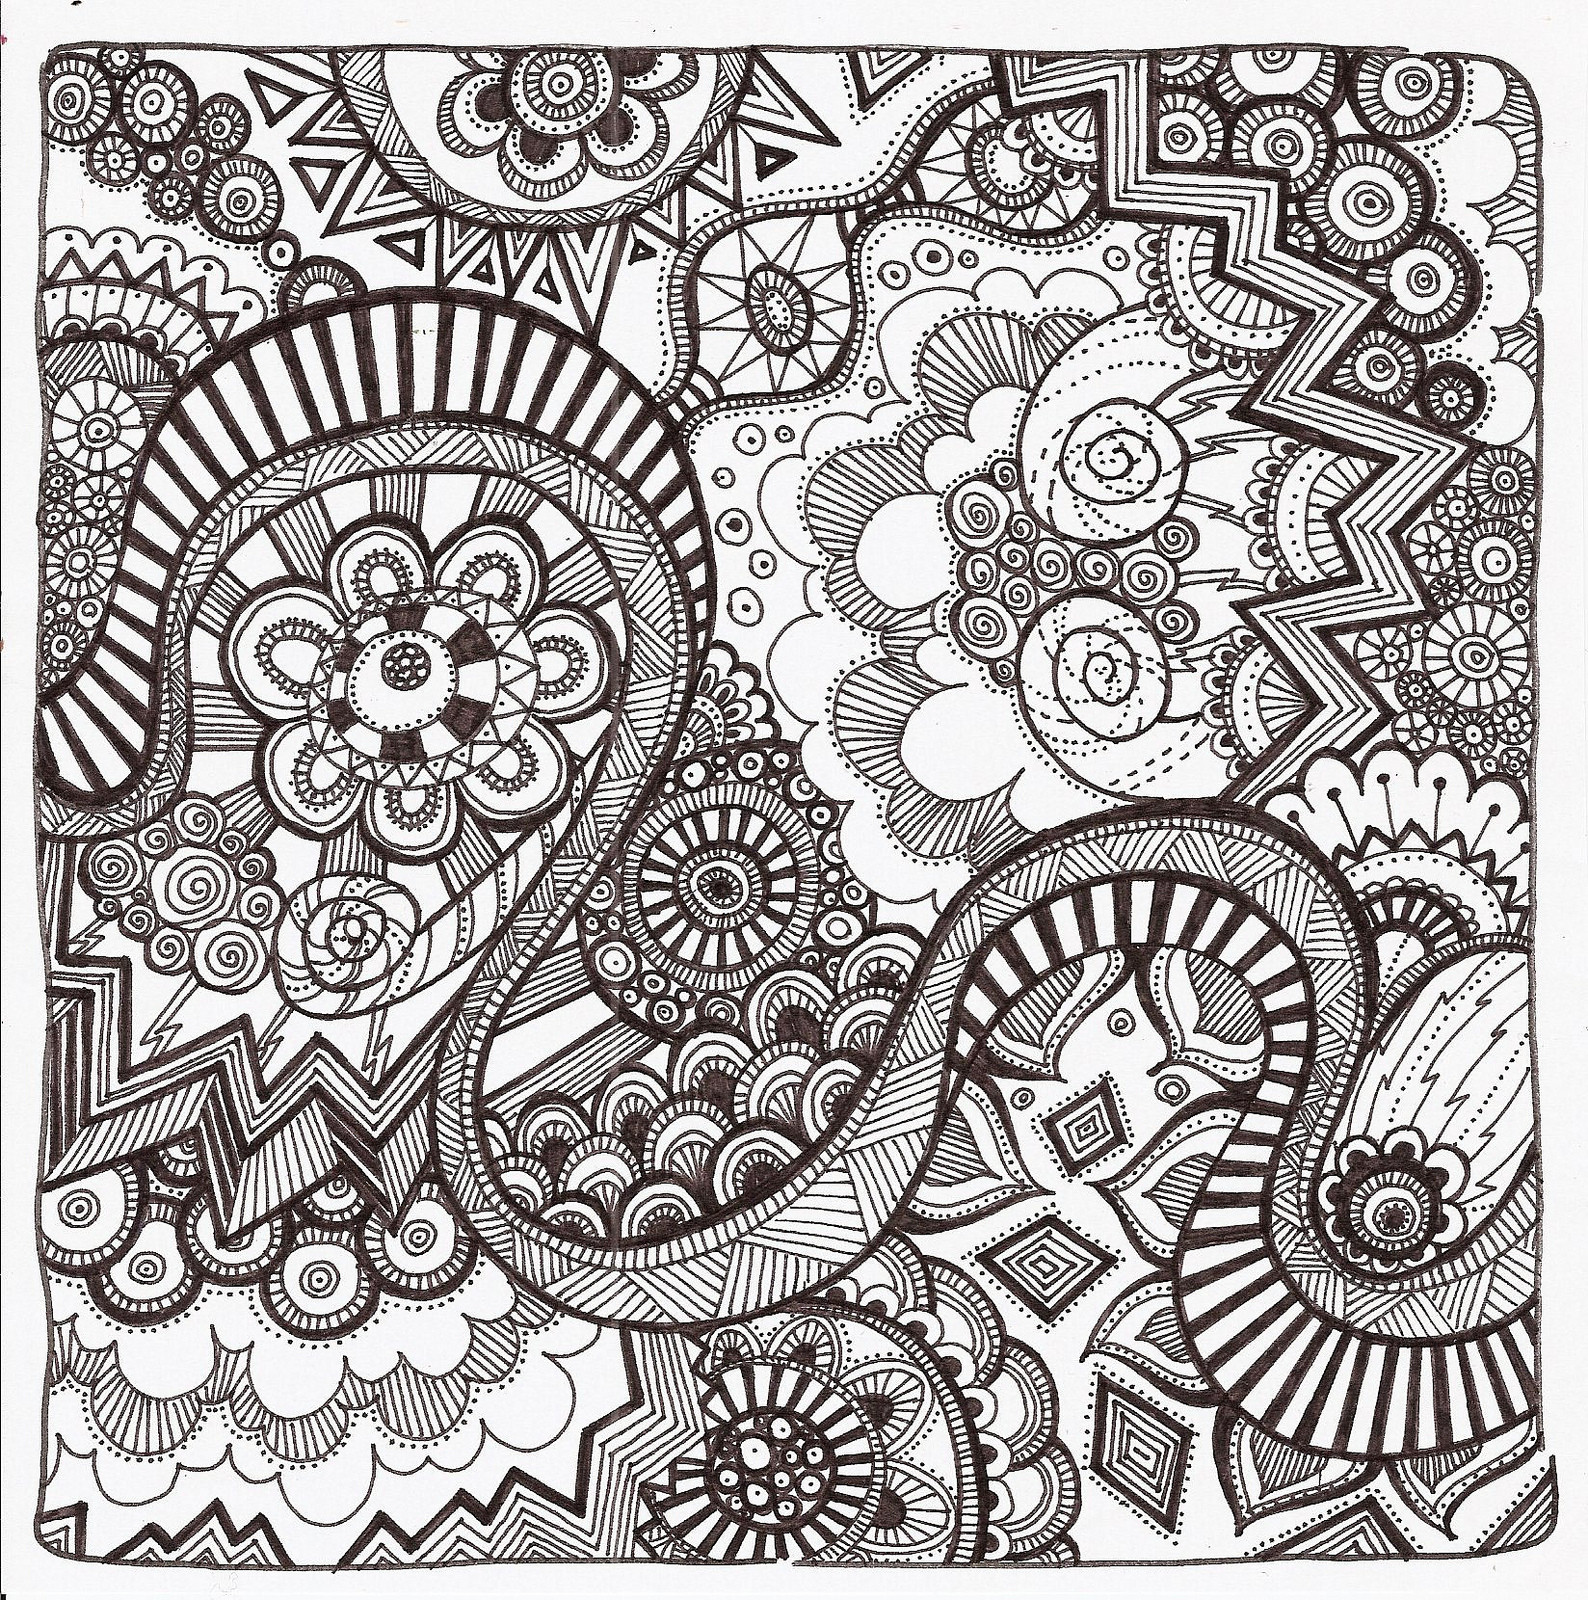 1588x1600 Free Colouring Pages For Adults To Help You Relax Adult Coloring